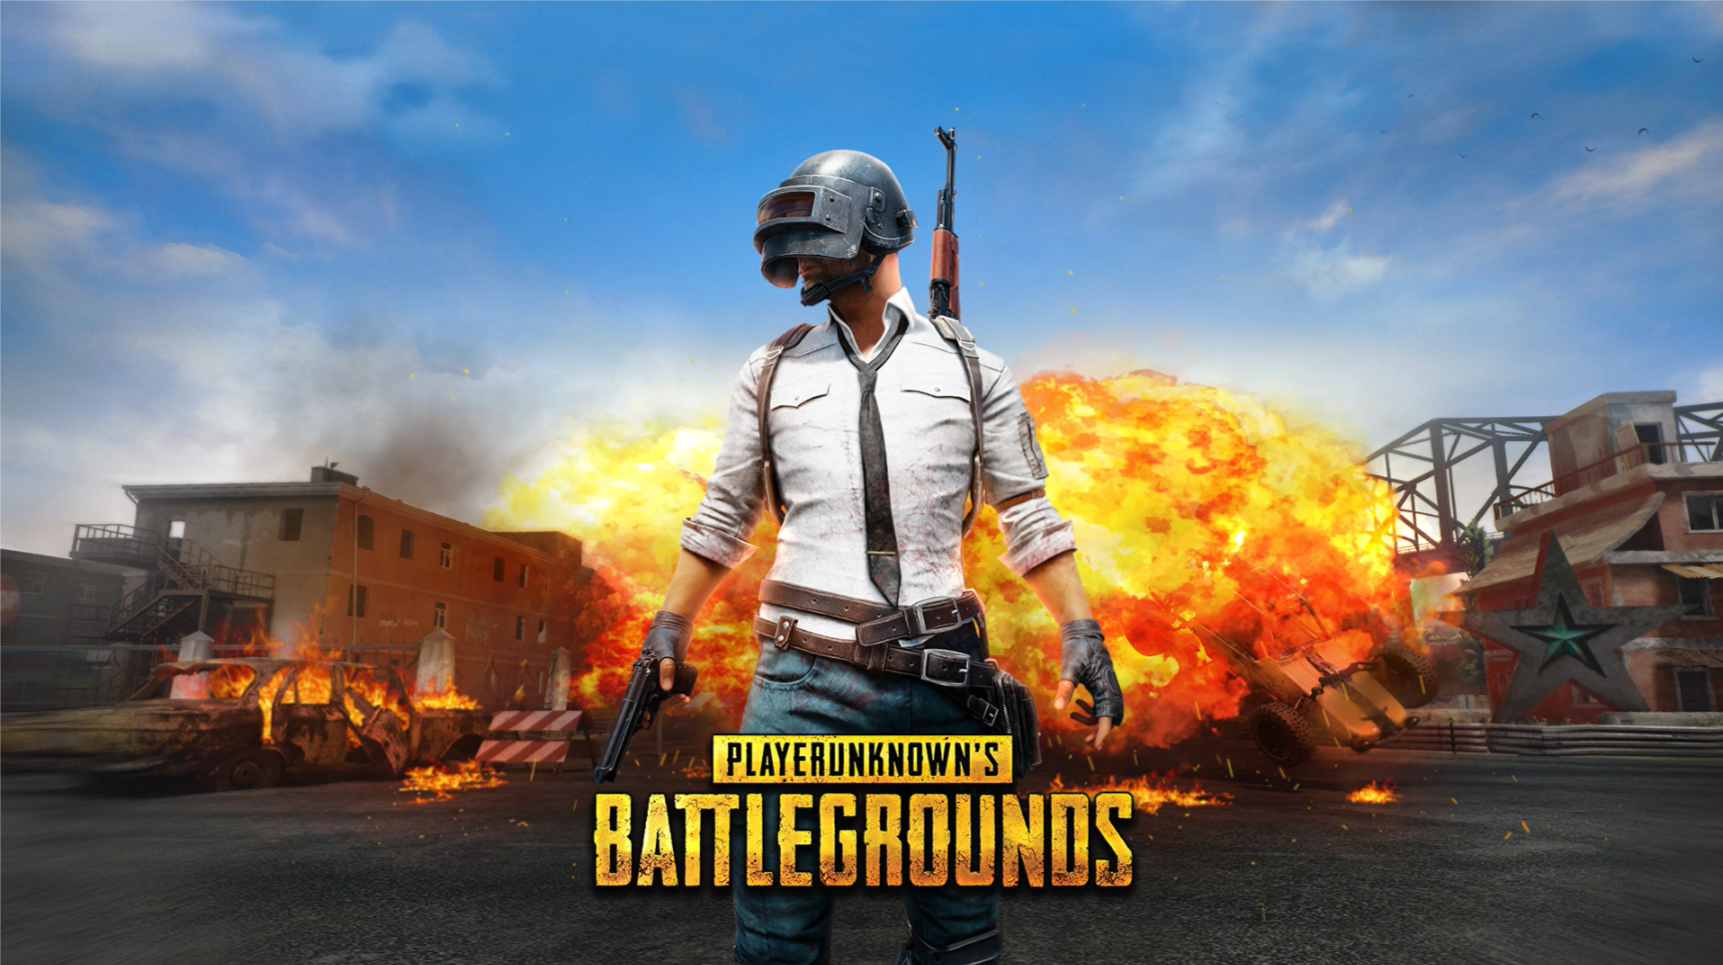 Account Suspended Battle Royale Game Player Unknown Download Wallpapers For Pc